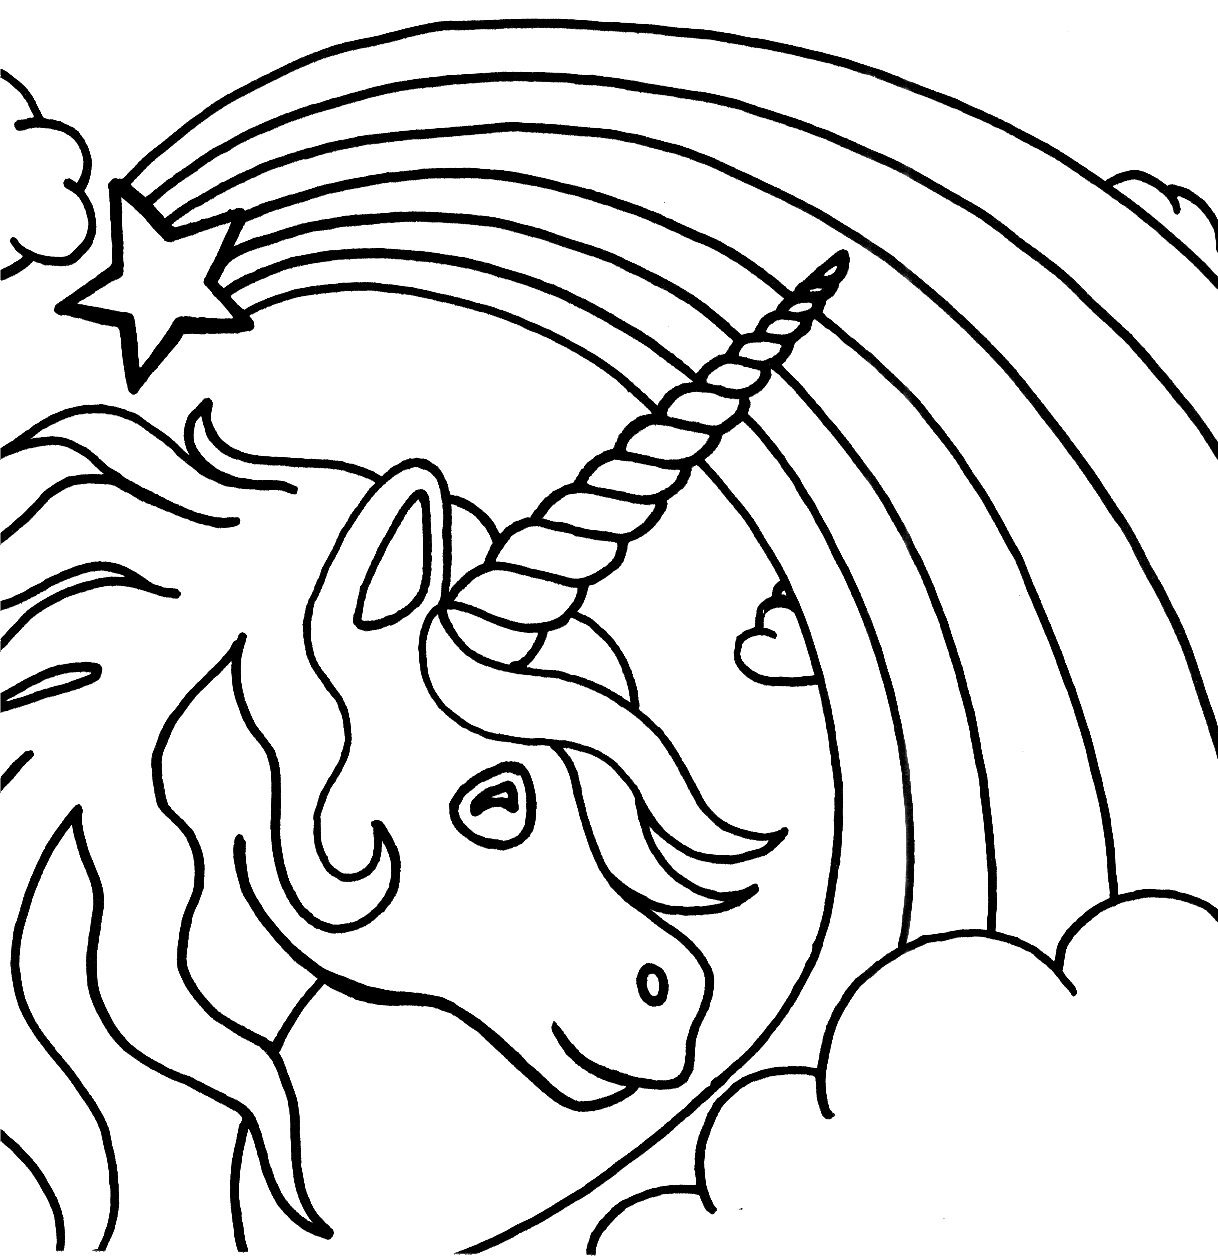 Free Printable Unicorn Coloring Pages For Kids | Fun | Unicorn - Free Printable Unicorn Coloring Pages